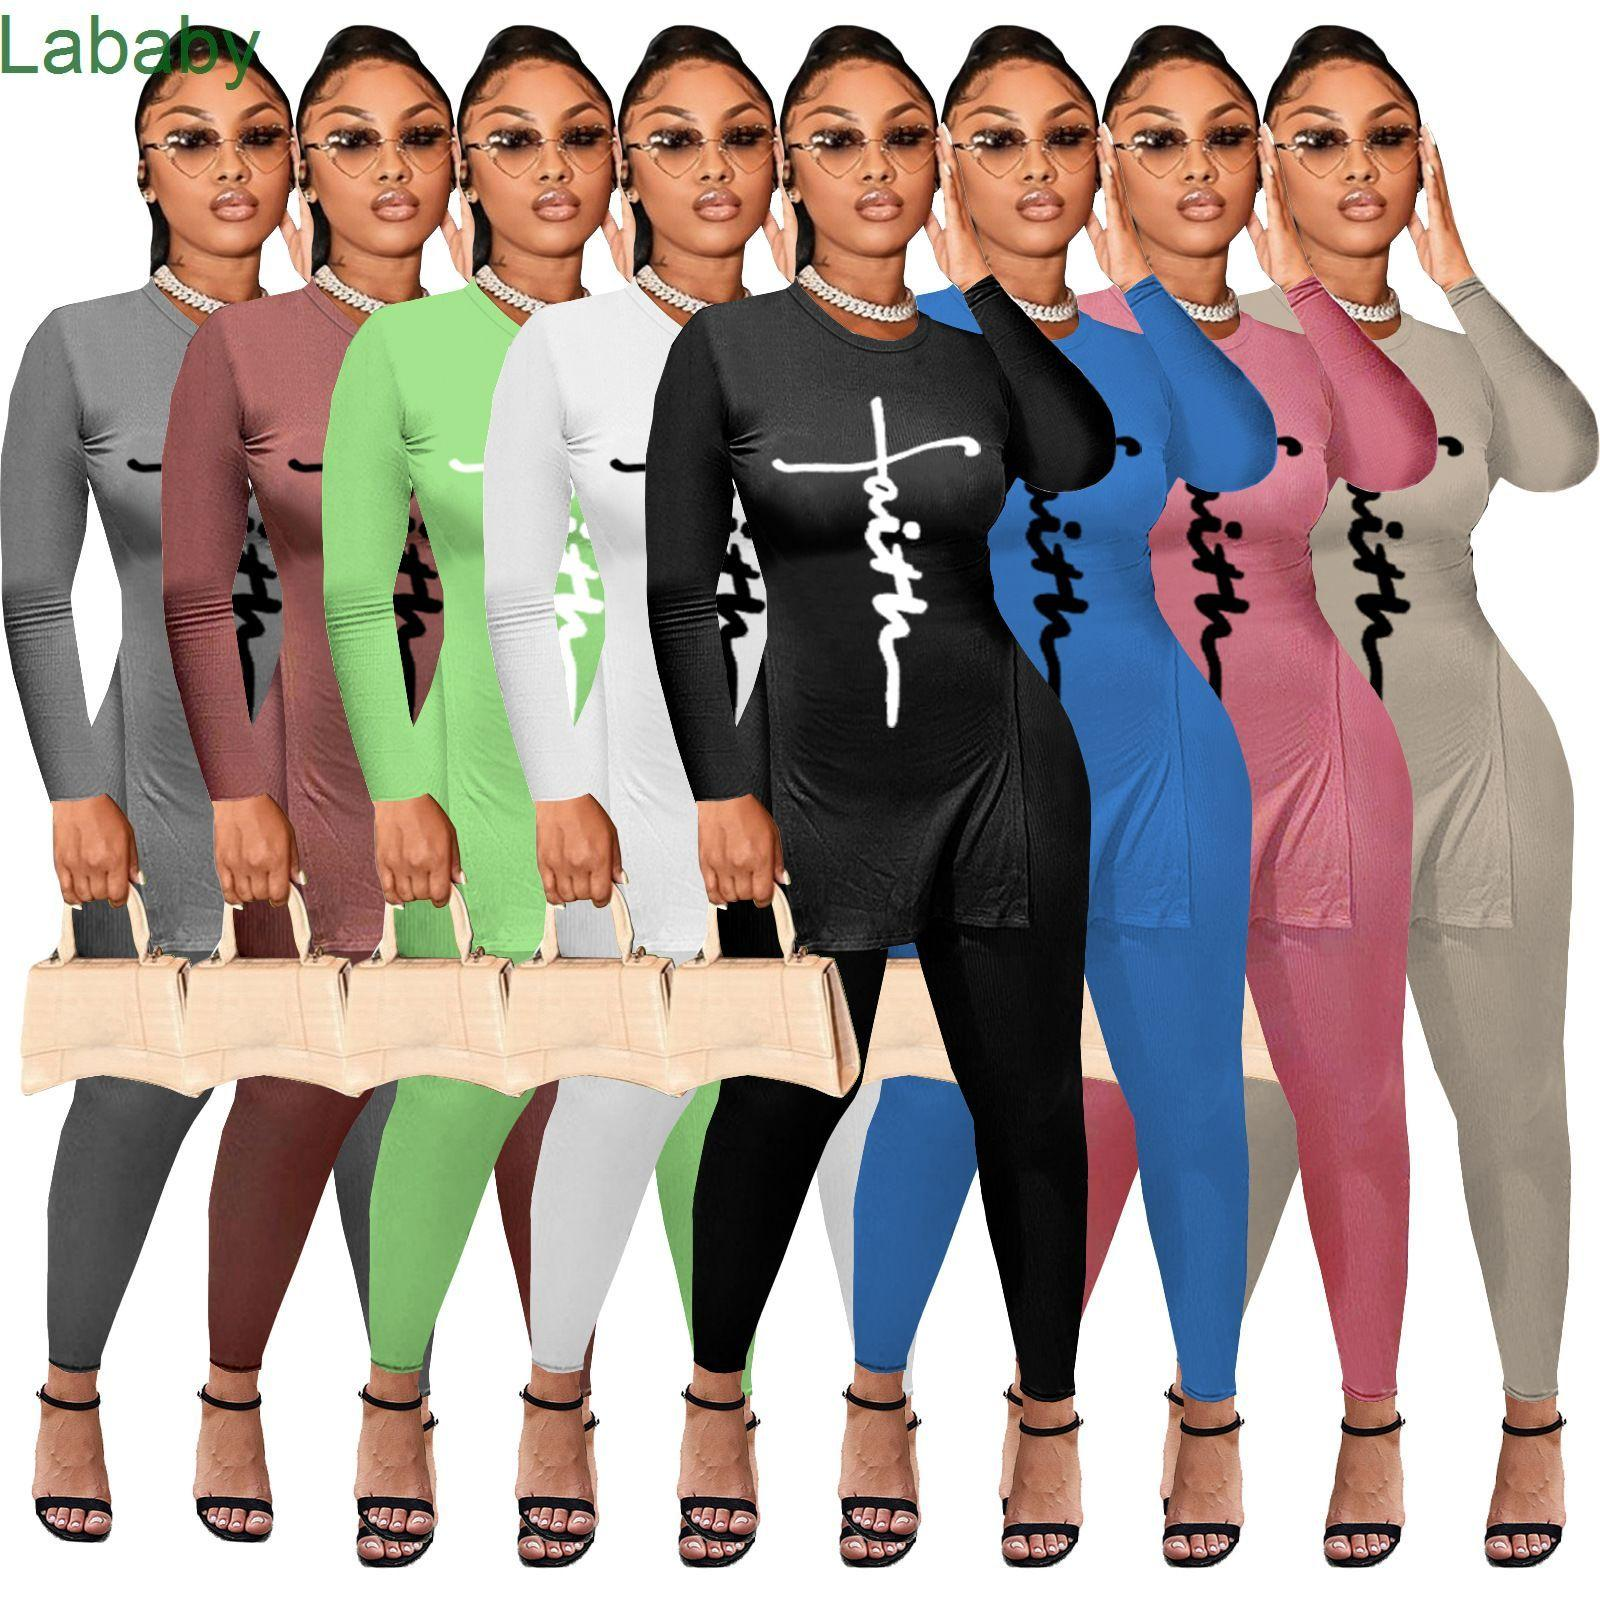 Women Tracksuits Two Pieces Set Designer Outfits Pit Bar Letters Printed Long Sleeve Leggings Ladies Casual Sportwear 8 Colours